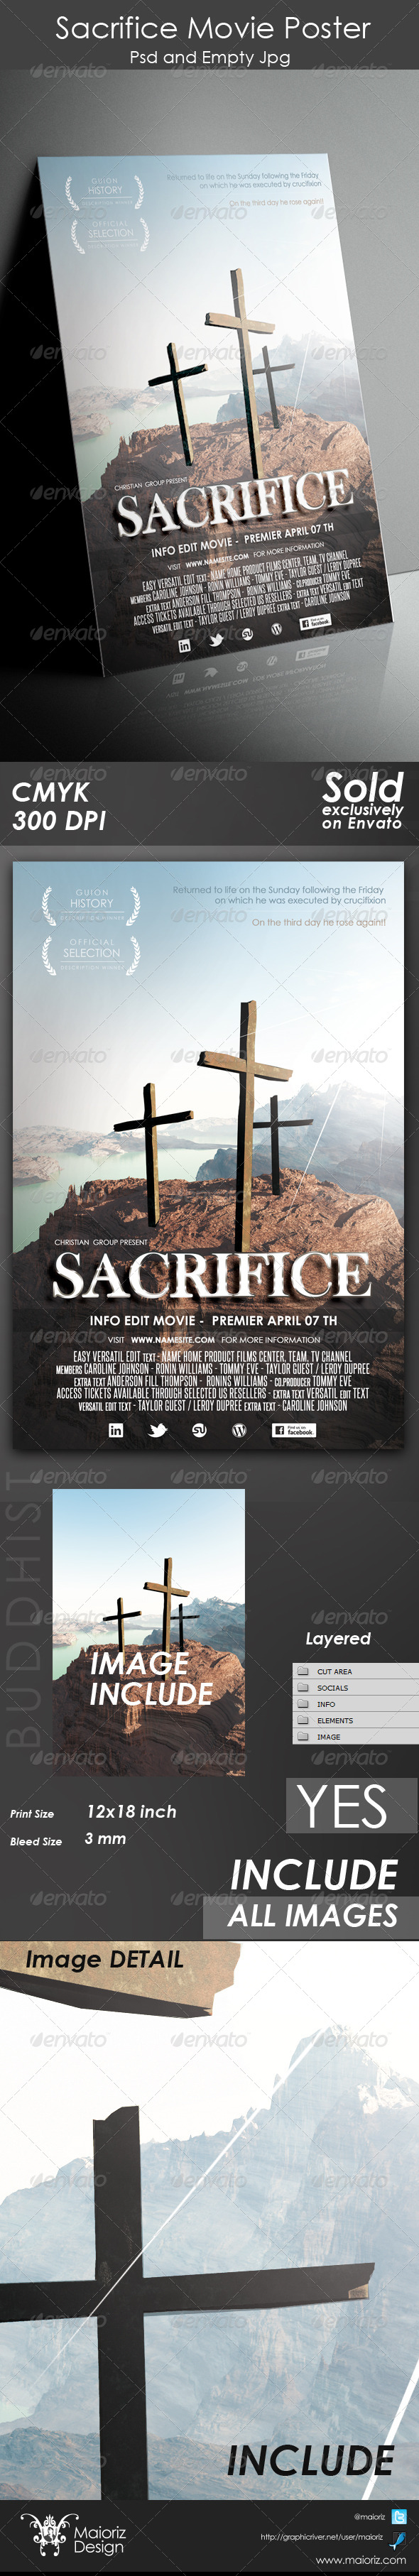 Sacrifice Movie Poster